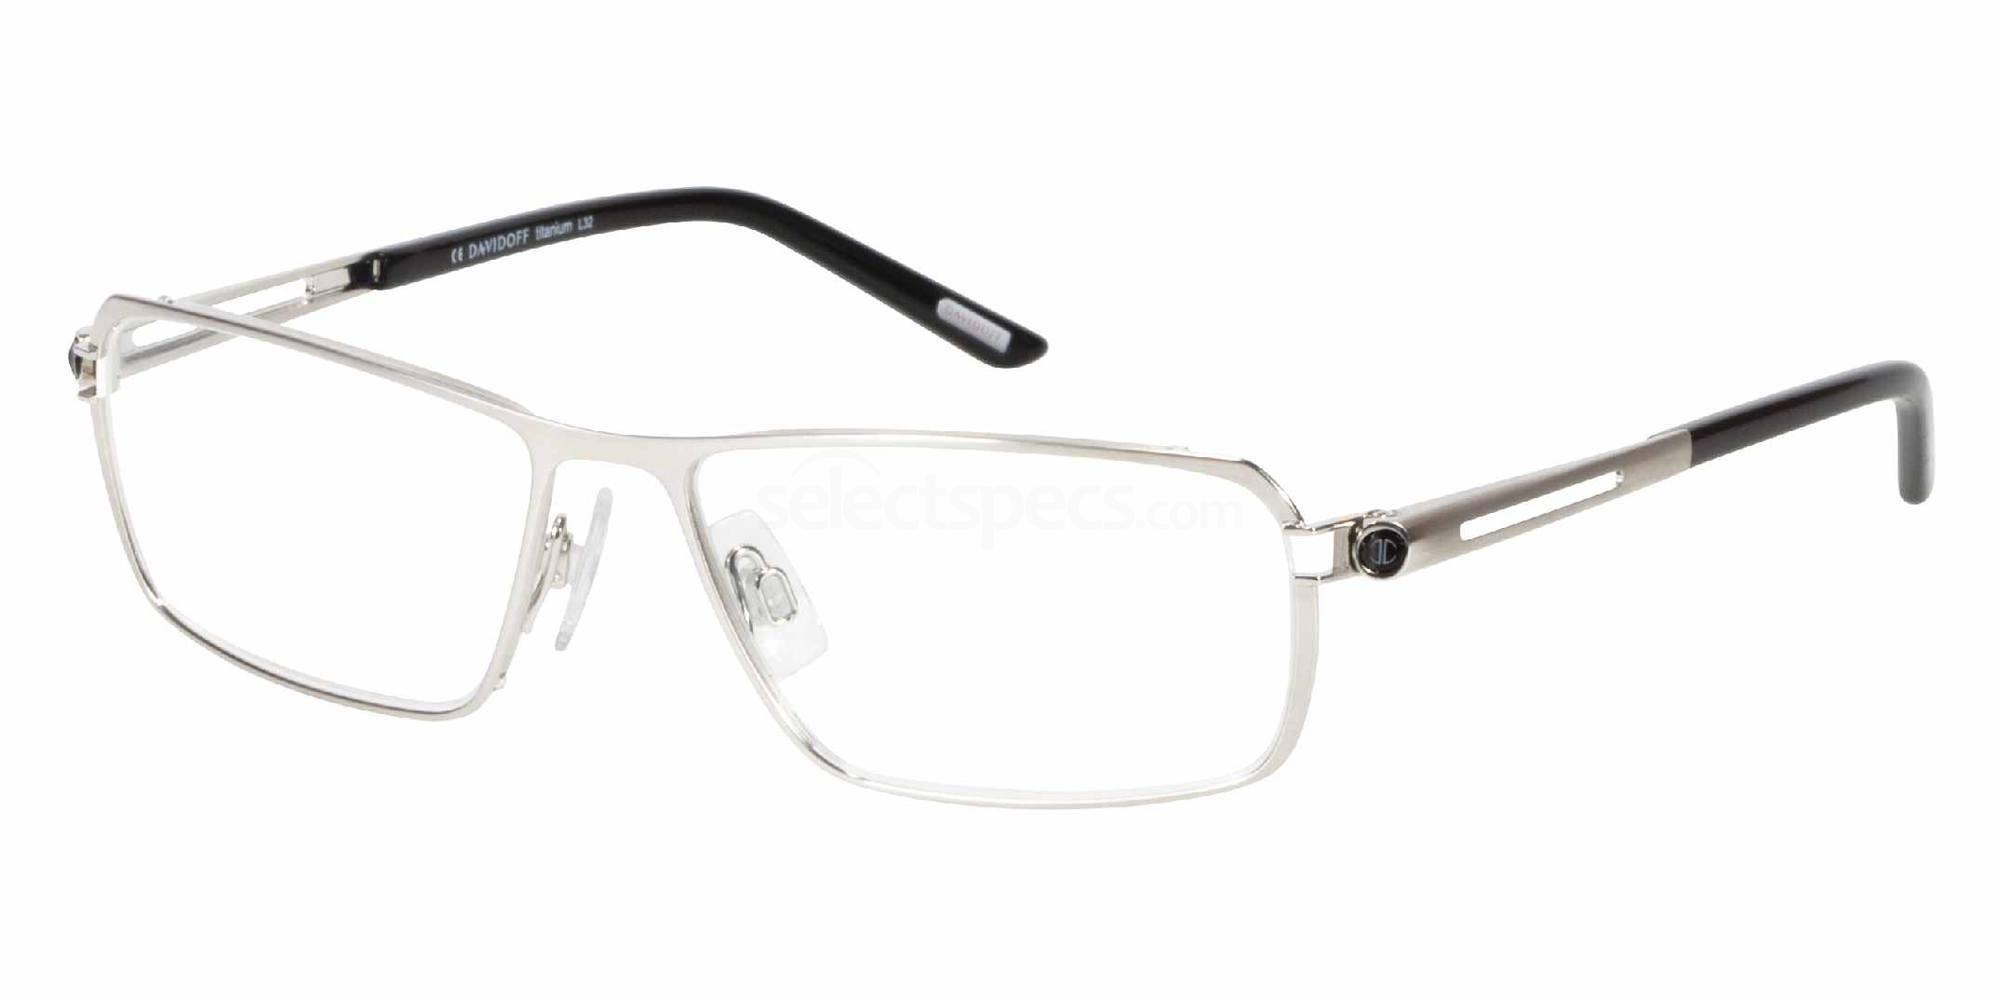 532 95502 Glasses, DAVIDOFF Eyewear